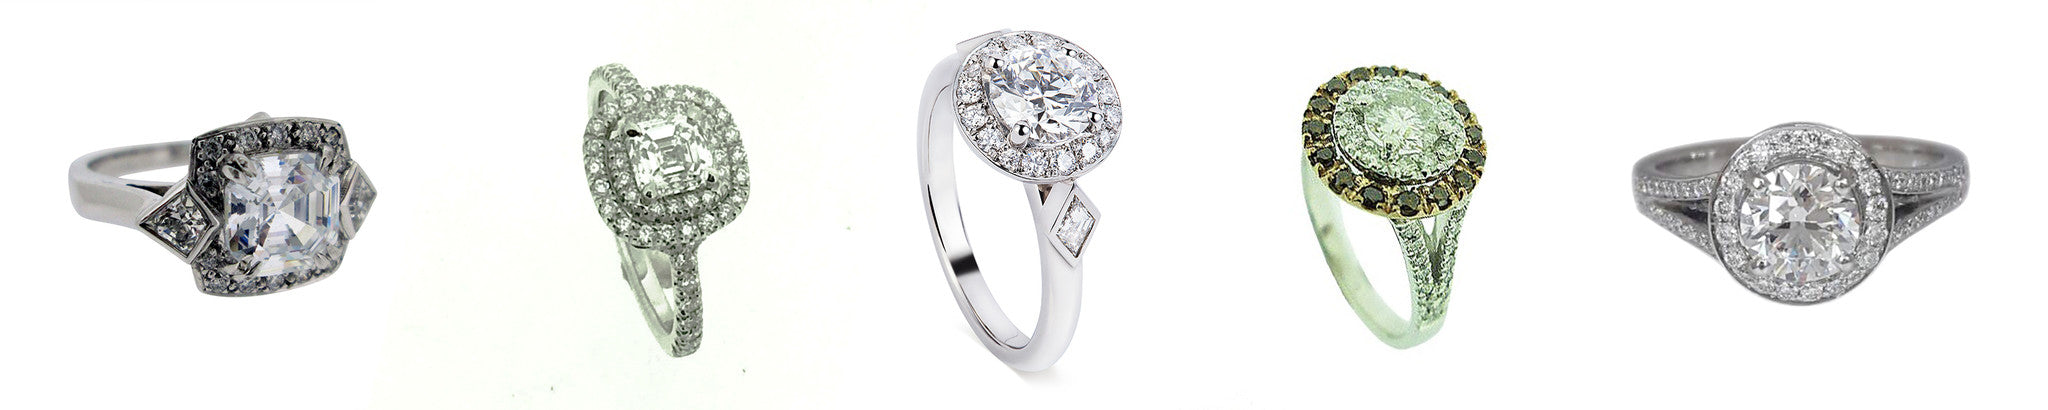 Diamond halo engagement ring bespoke image gallery